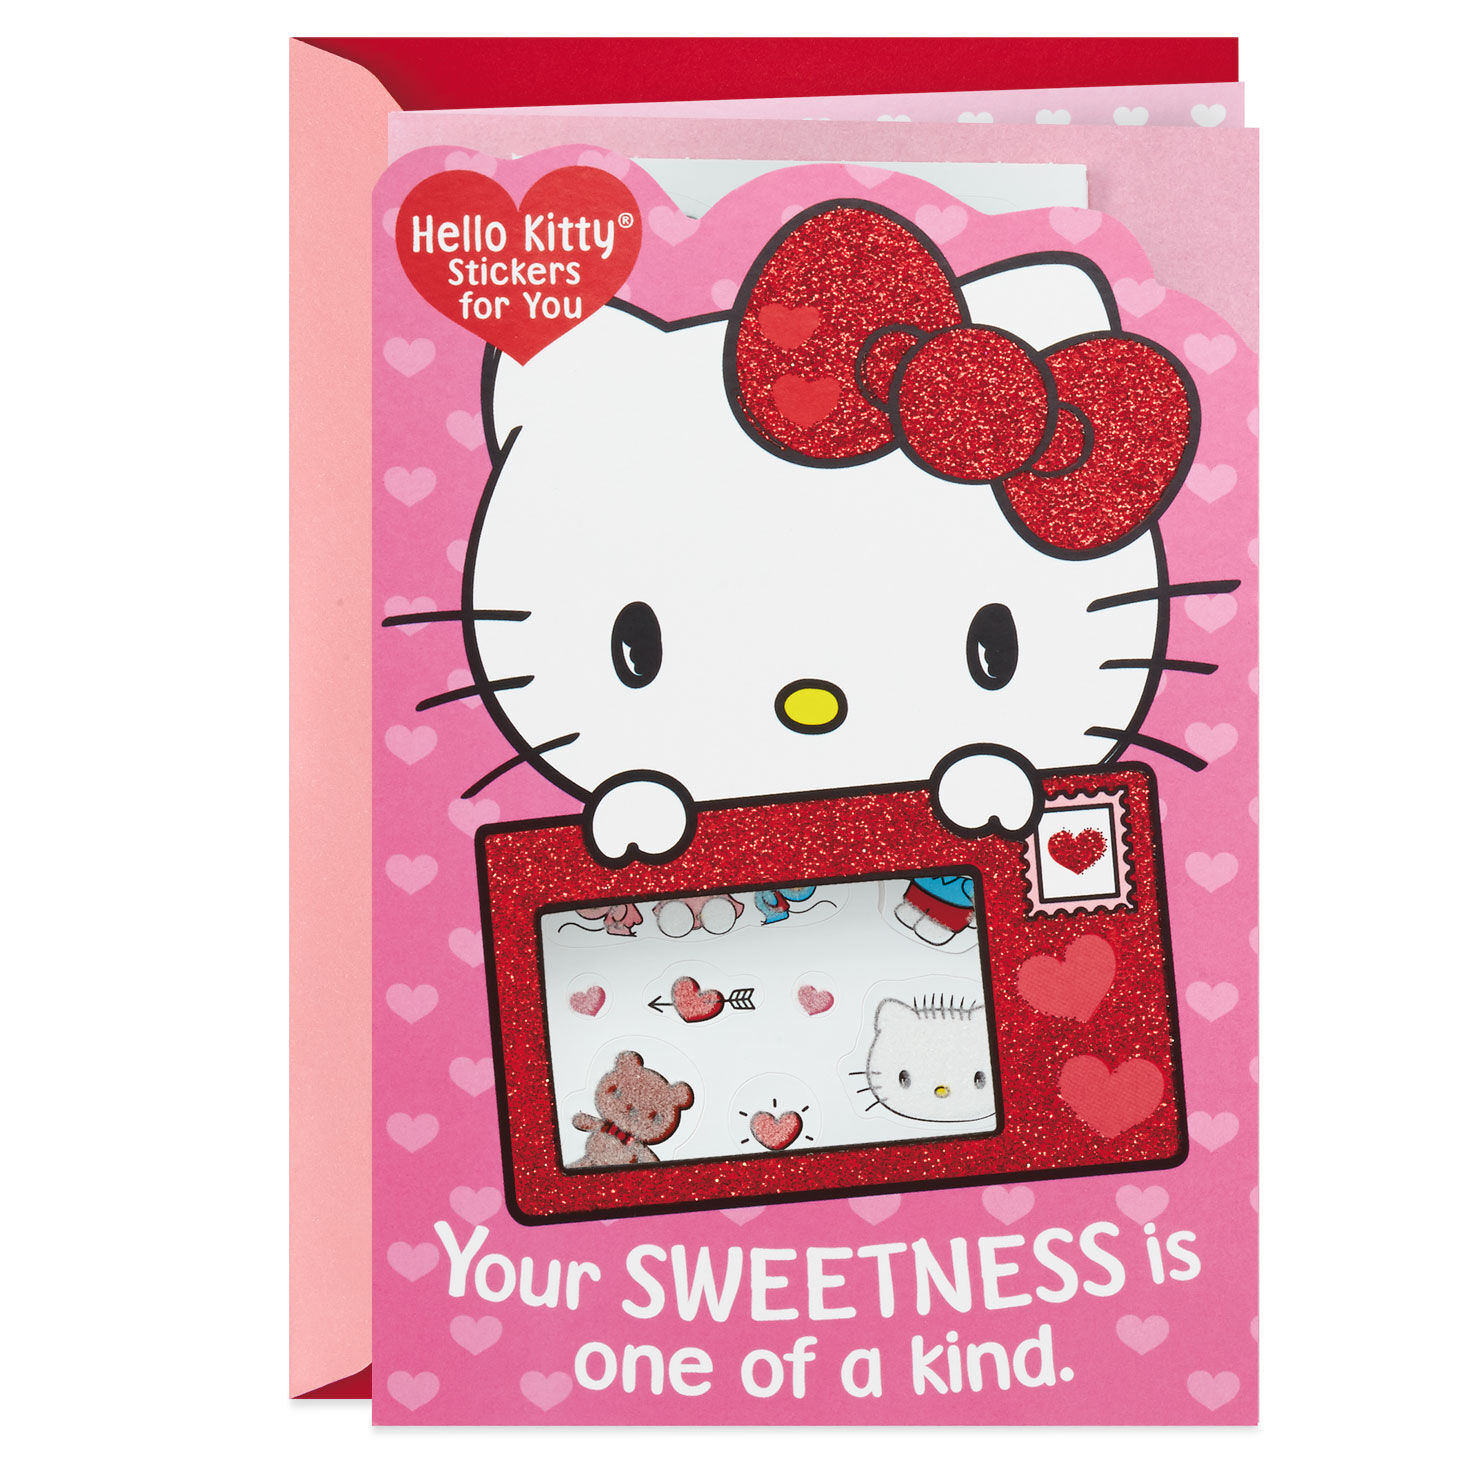 Hello Kitty® Valentineu0027s Day Card With Stickers   Greeting Cards   Hallmark